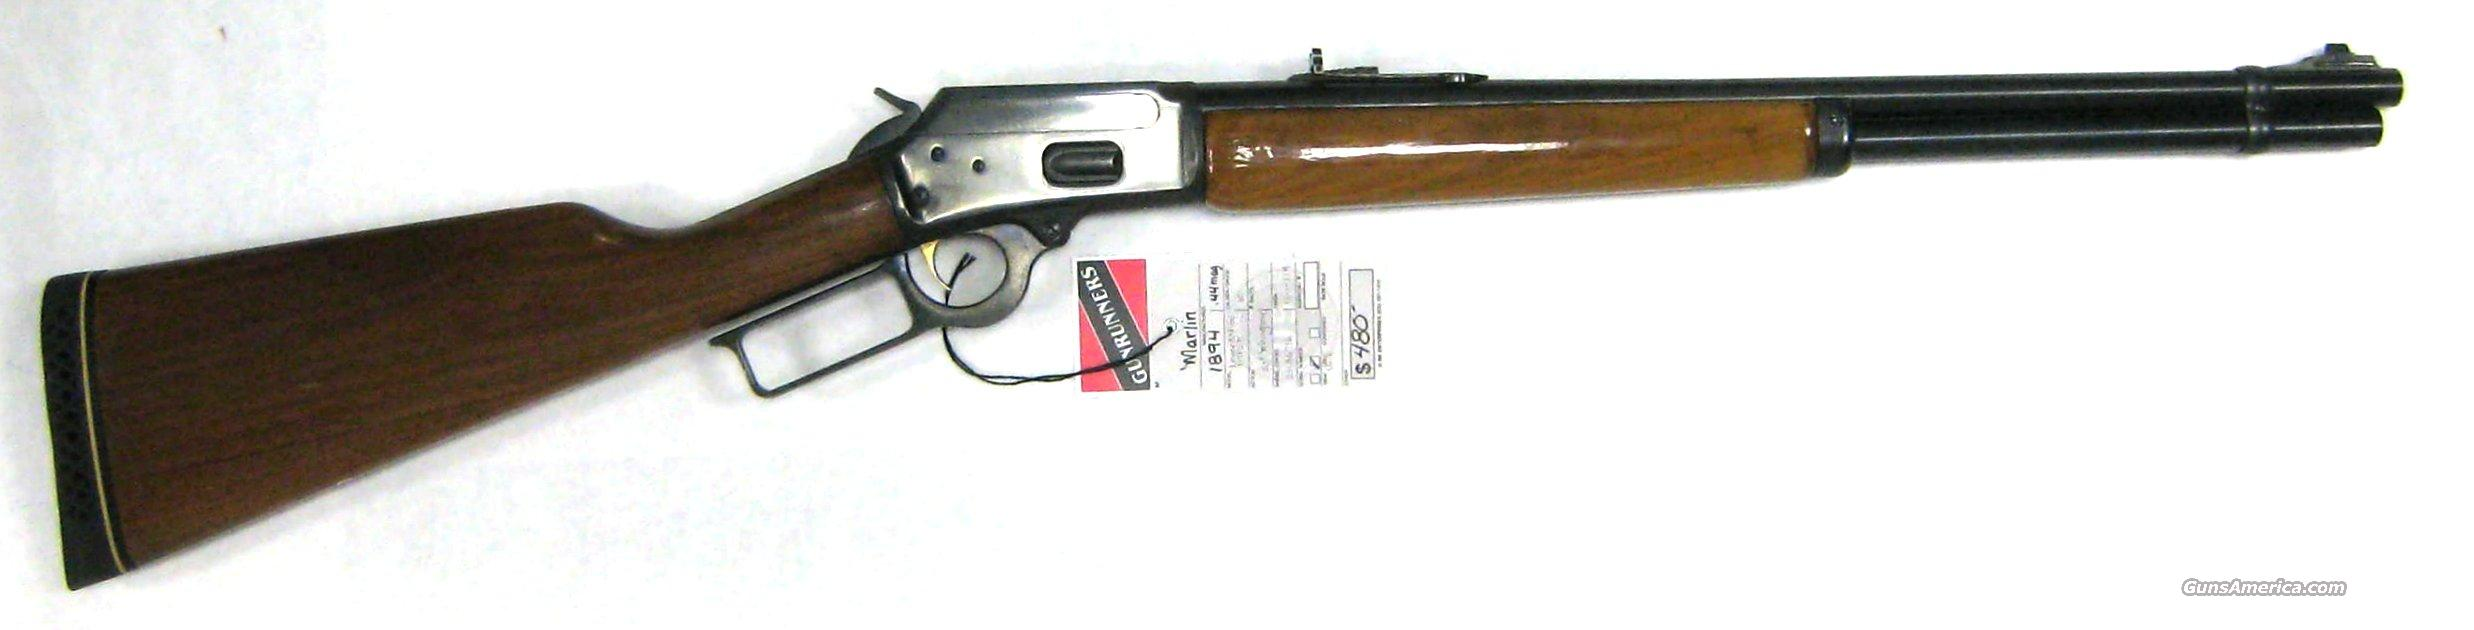 Marlin 1894 .44mag  Guns > Rifles > Marlin Rifles > Modern > Bolt/Pump